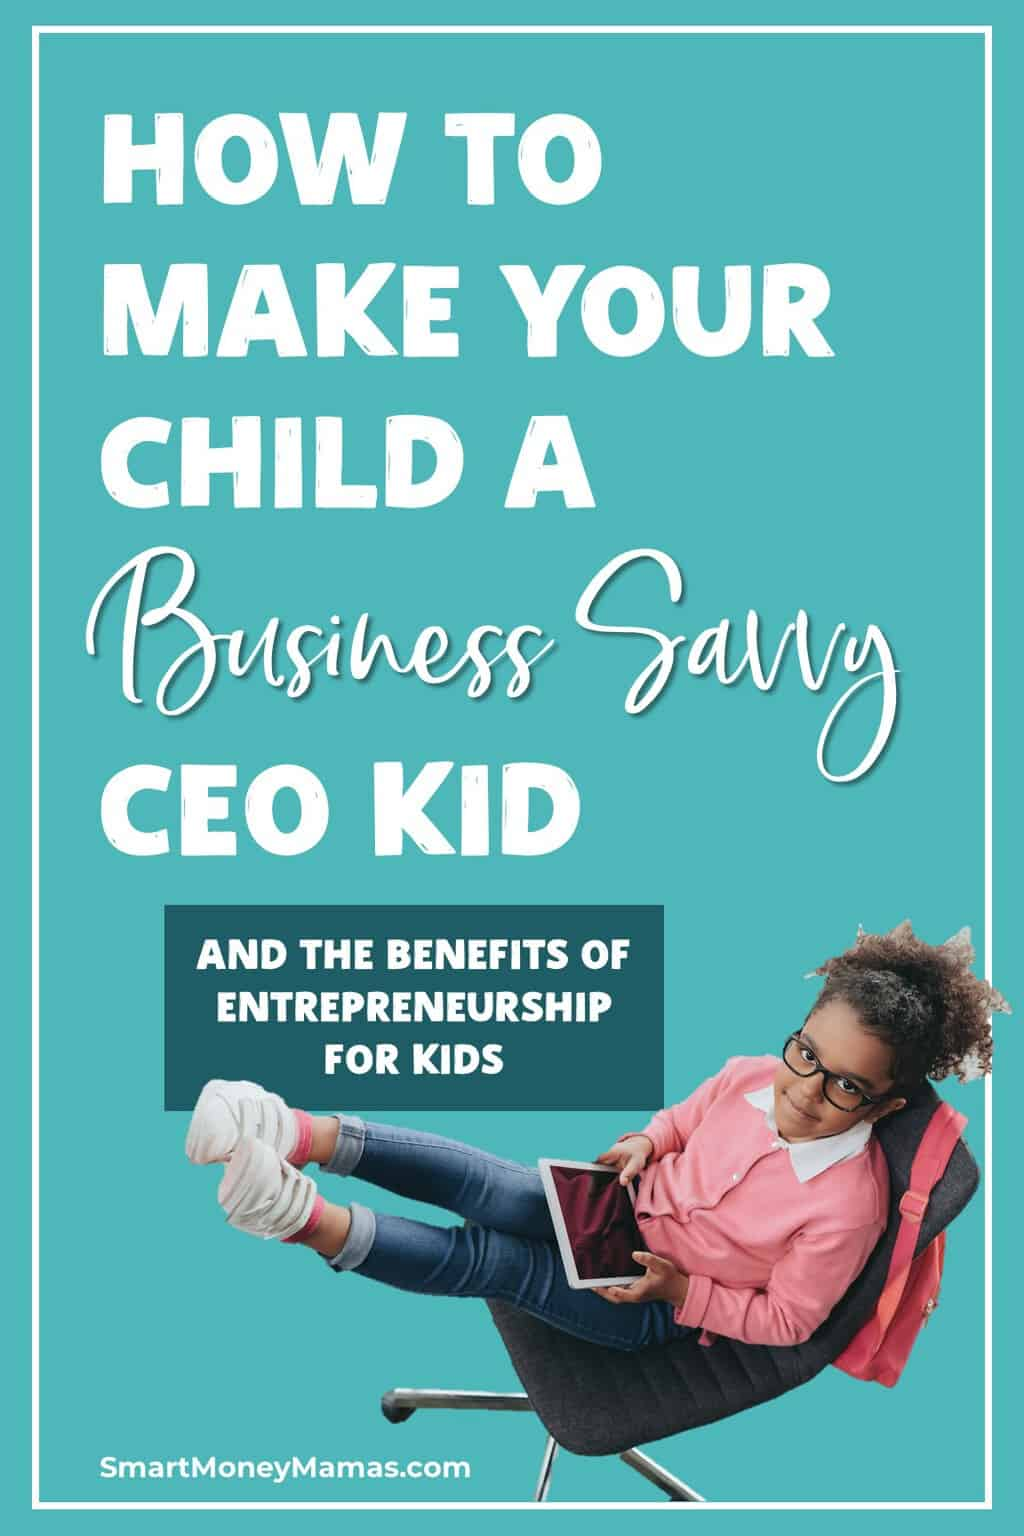 Has you kid ever asked to start a lemonade stand or wanted some extra cash for a special goal? The  lessons of entrepreneurship can serve your kids for life, even if they choose not to become business owners as adults. Invest in their future with The CEO Kid course! #smartmoneymamas #ceokid #entrepreneurship #moneylessons